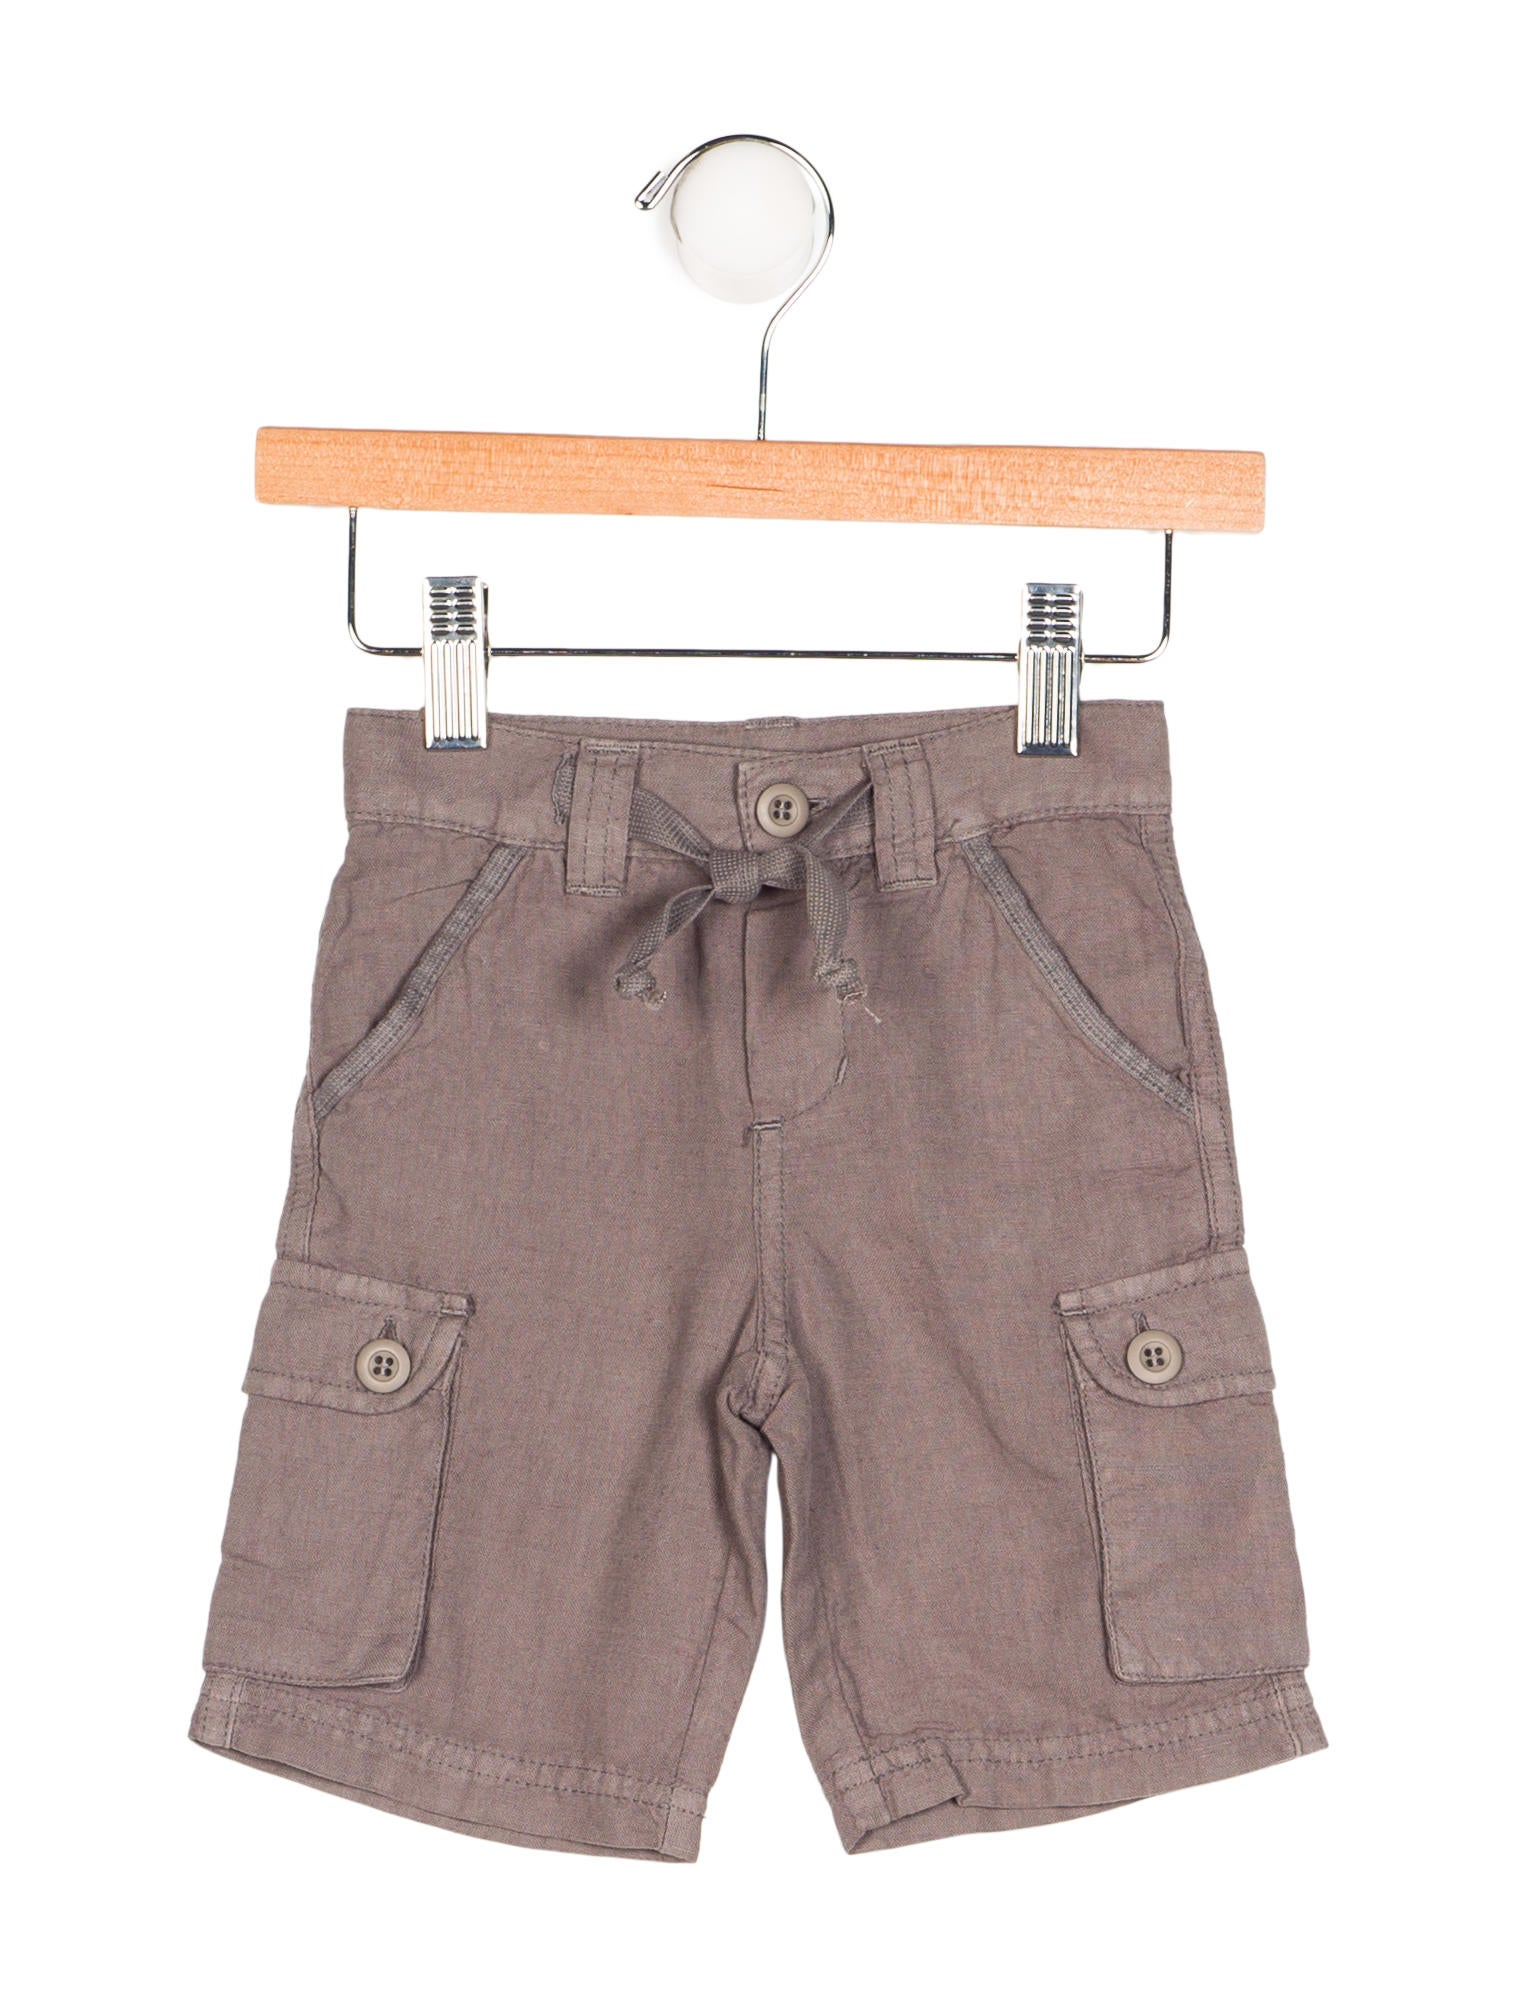 You'll find the widest range of Shorts products online and delivered to your door. Shop today! Boys' grey striped linen blend shorts Save. Was € Now € U.S. Polo Assn. Boys' grey sweat shorts .